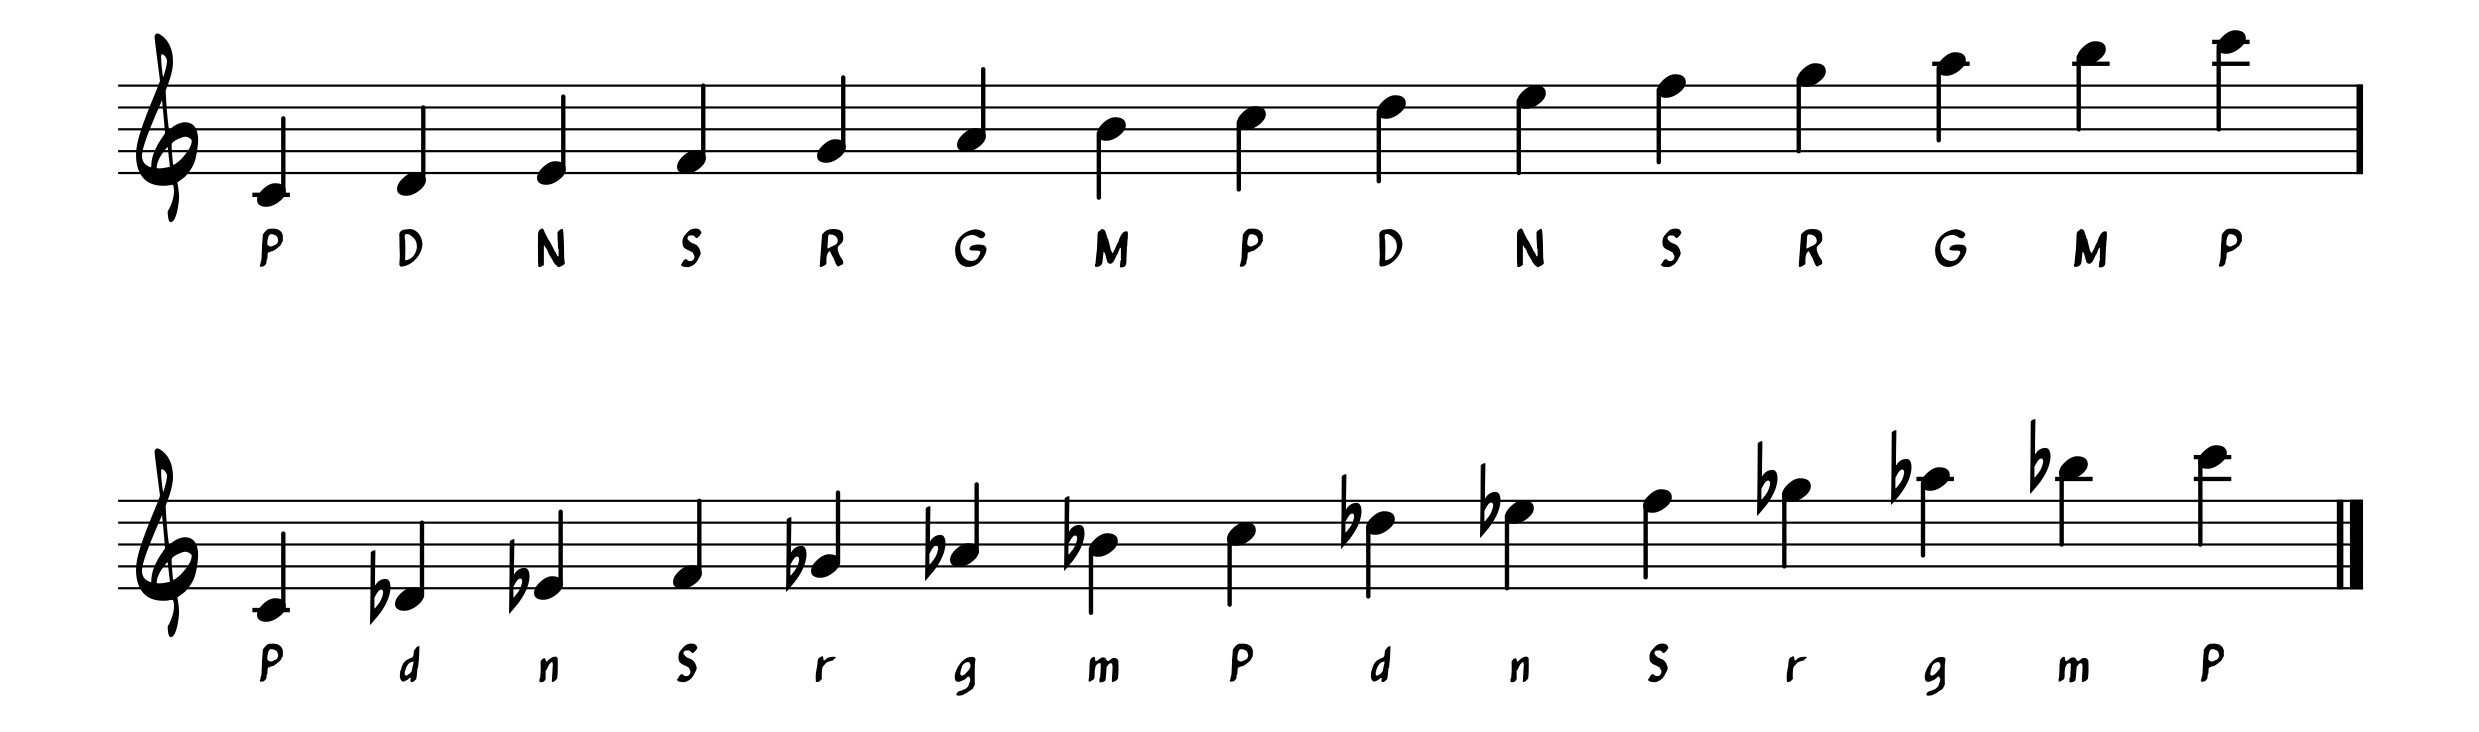 Bansuri and Western Notation – Let's use F!